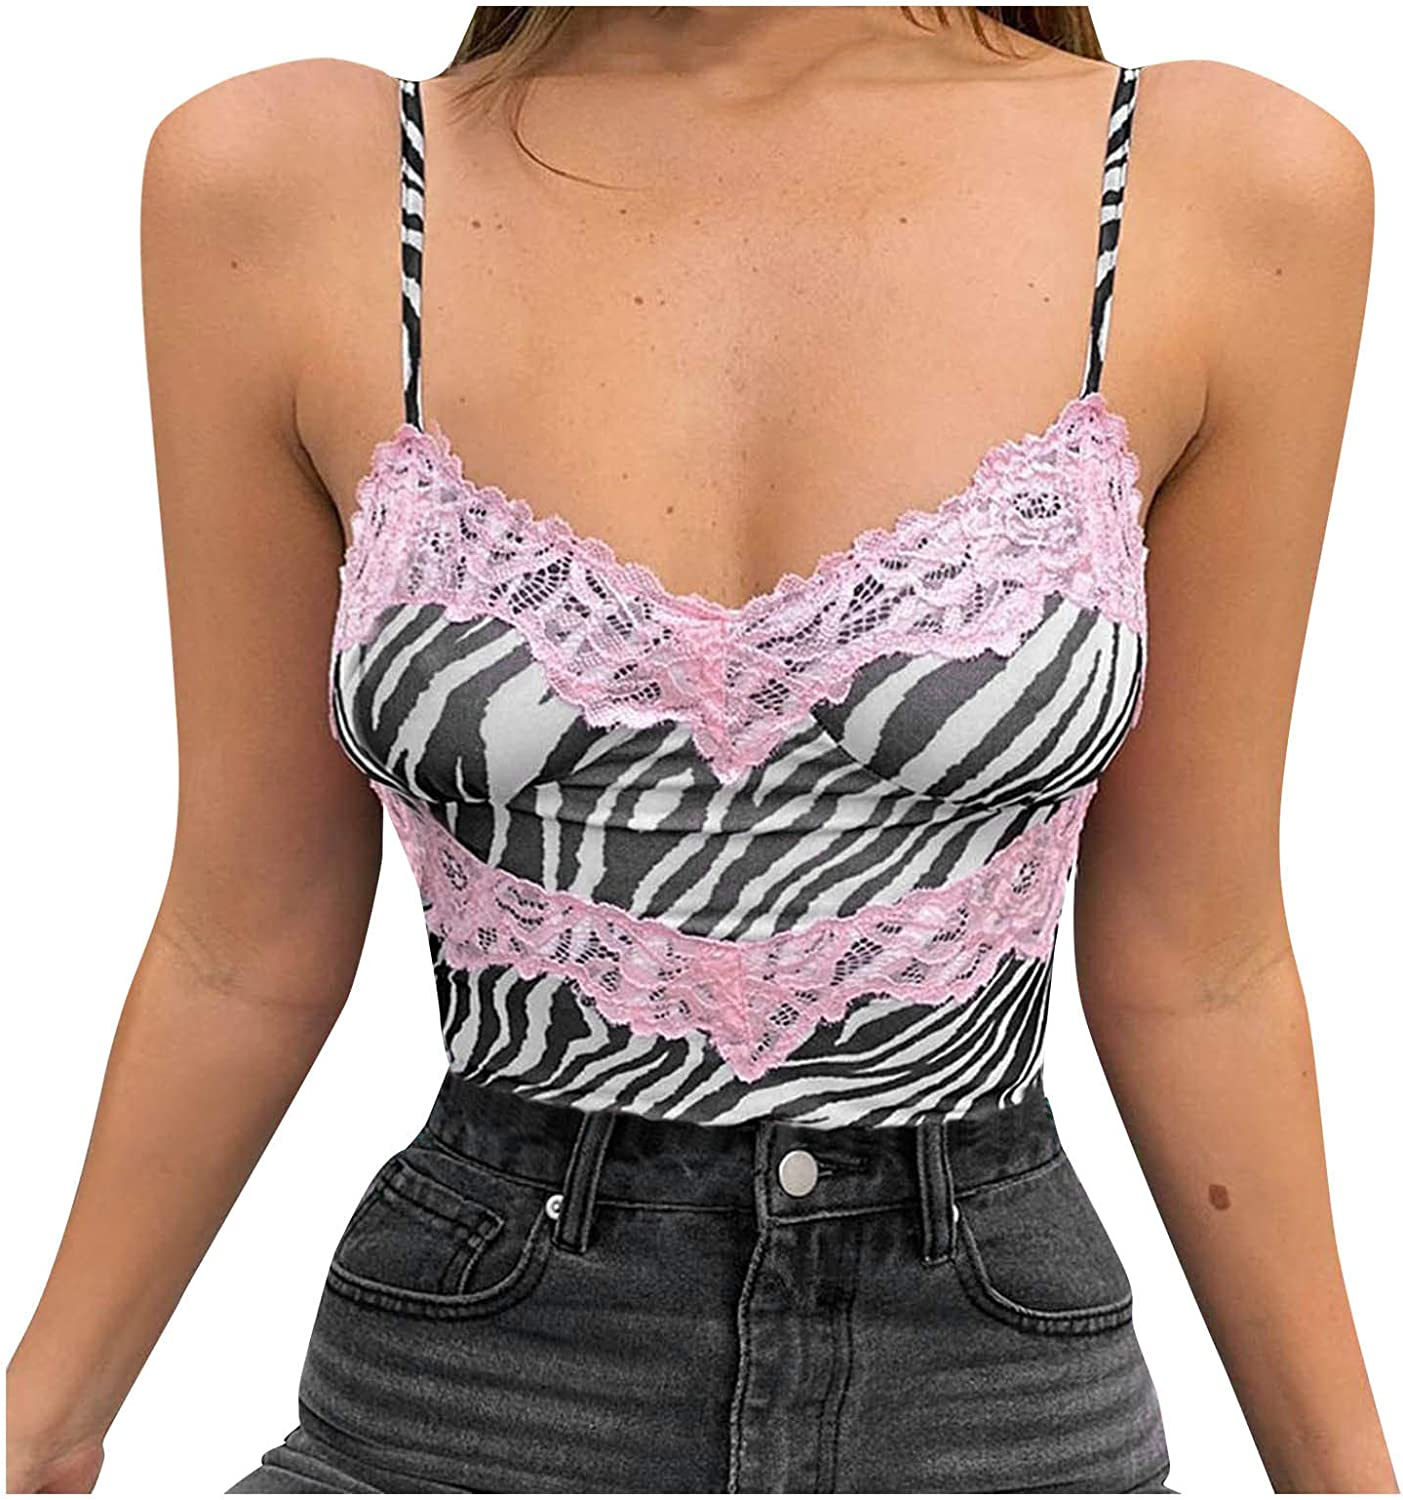 Women Crop Tops, Y2K Fashion Tops Lace Trim Sexy Sleeveless Tank Tops Cute Club Vest Summer Streetwear Backless Cami Top